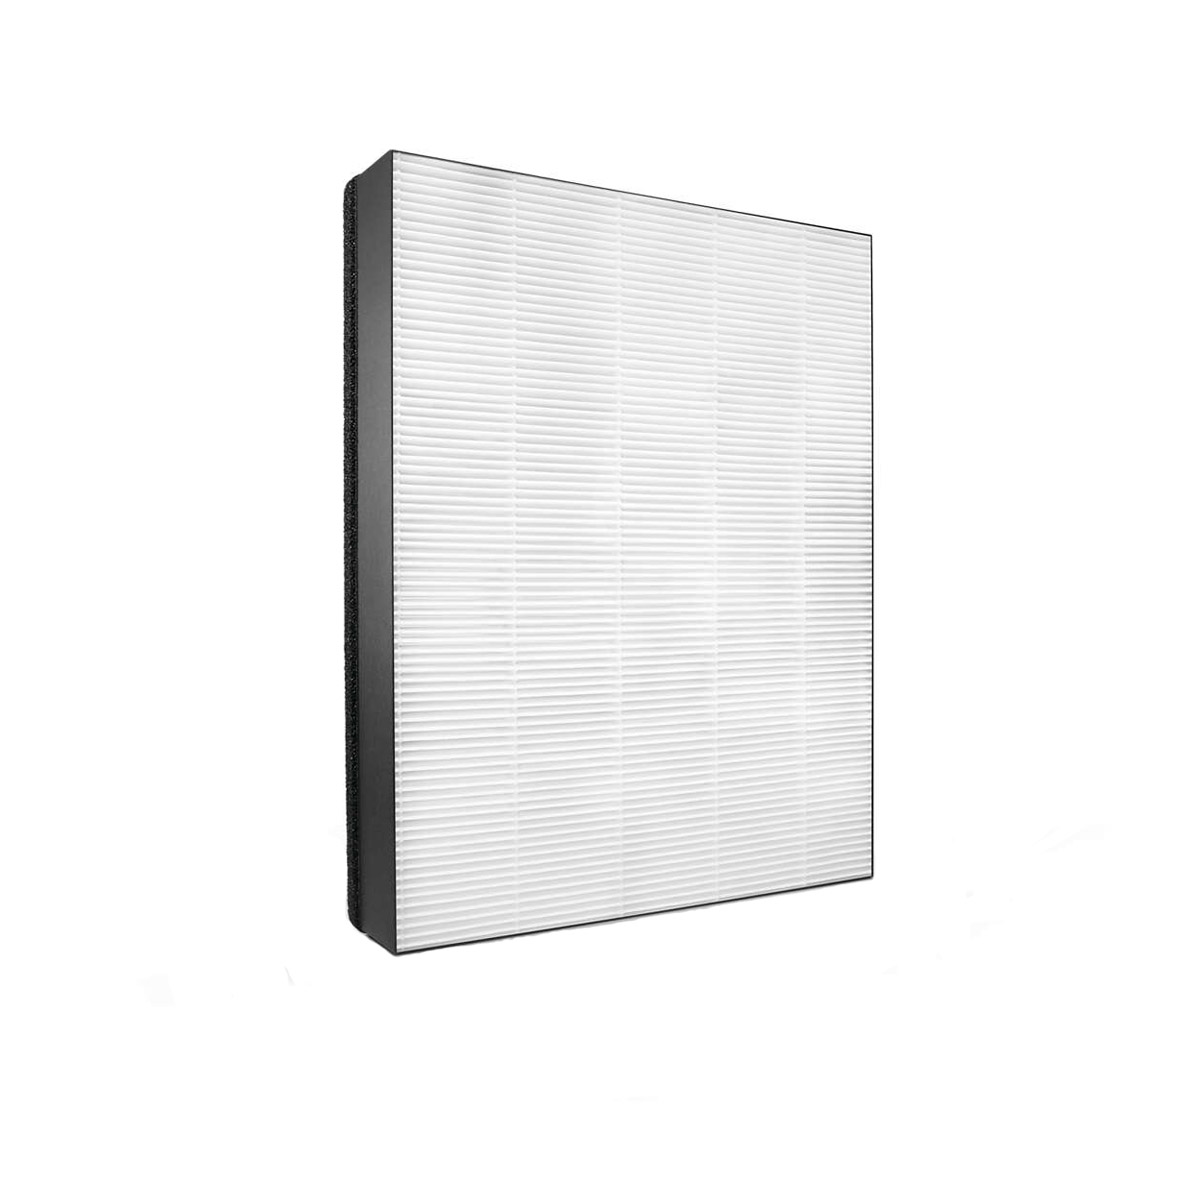 Philips NanoProtect HEPA Series 1000 Replacement Filter